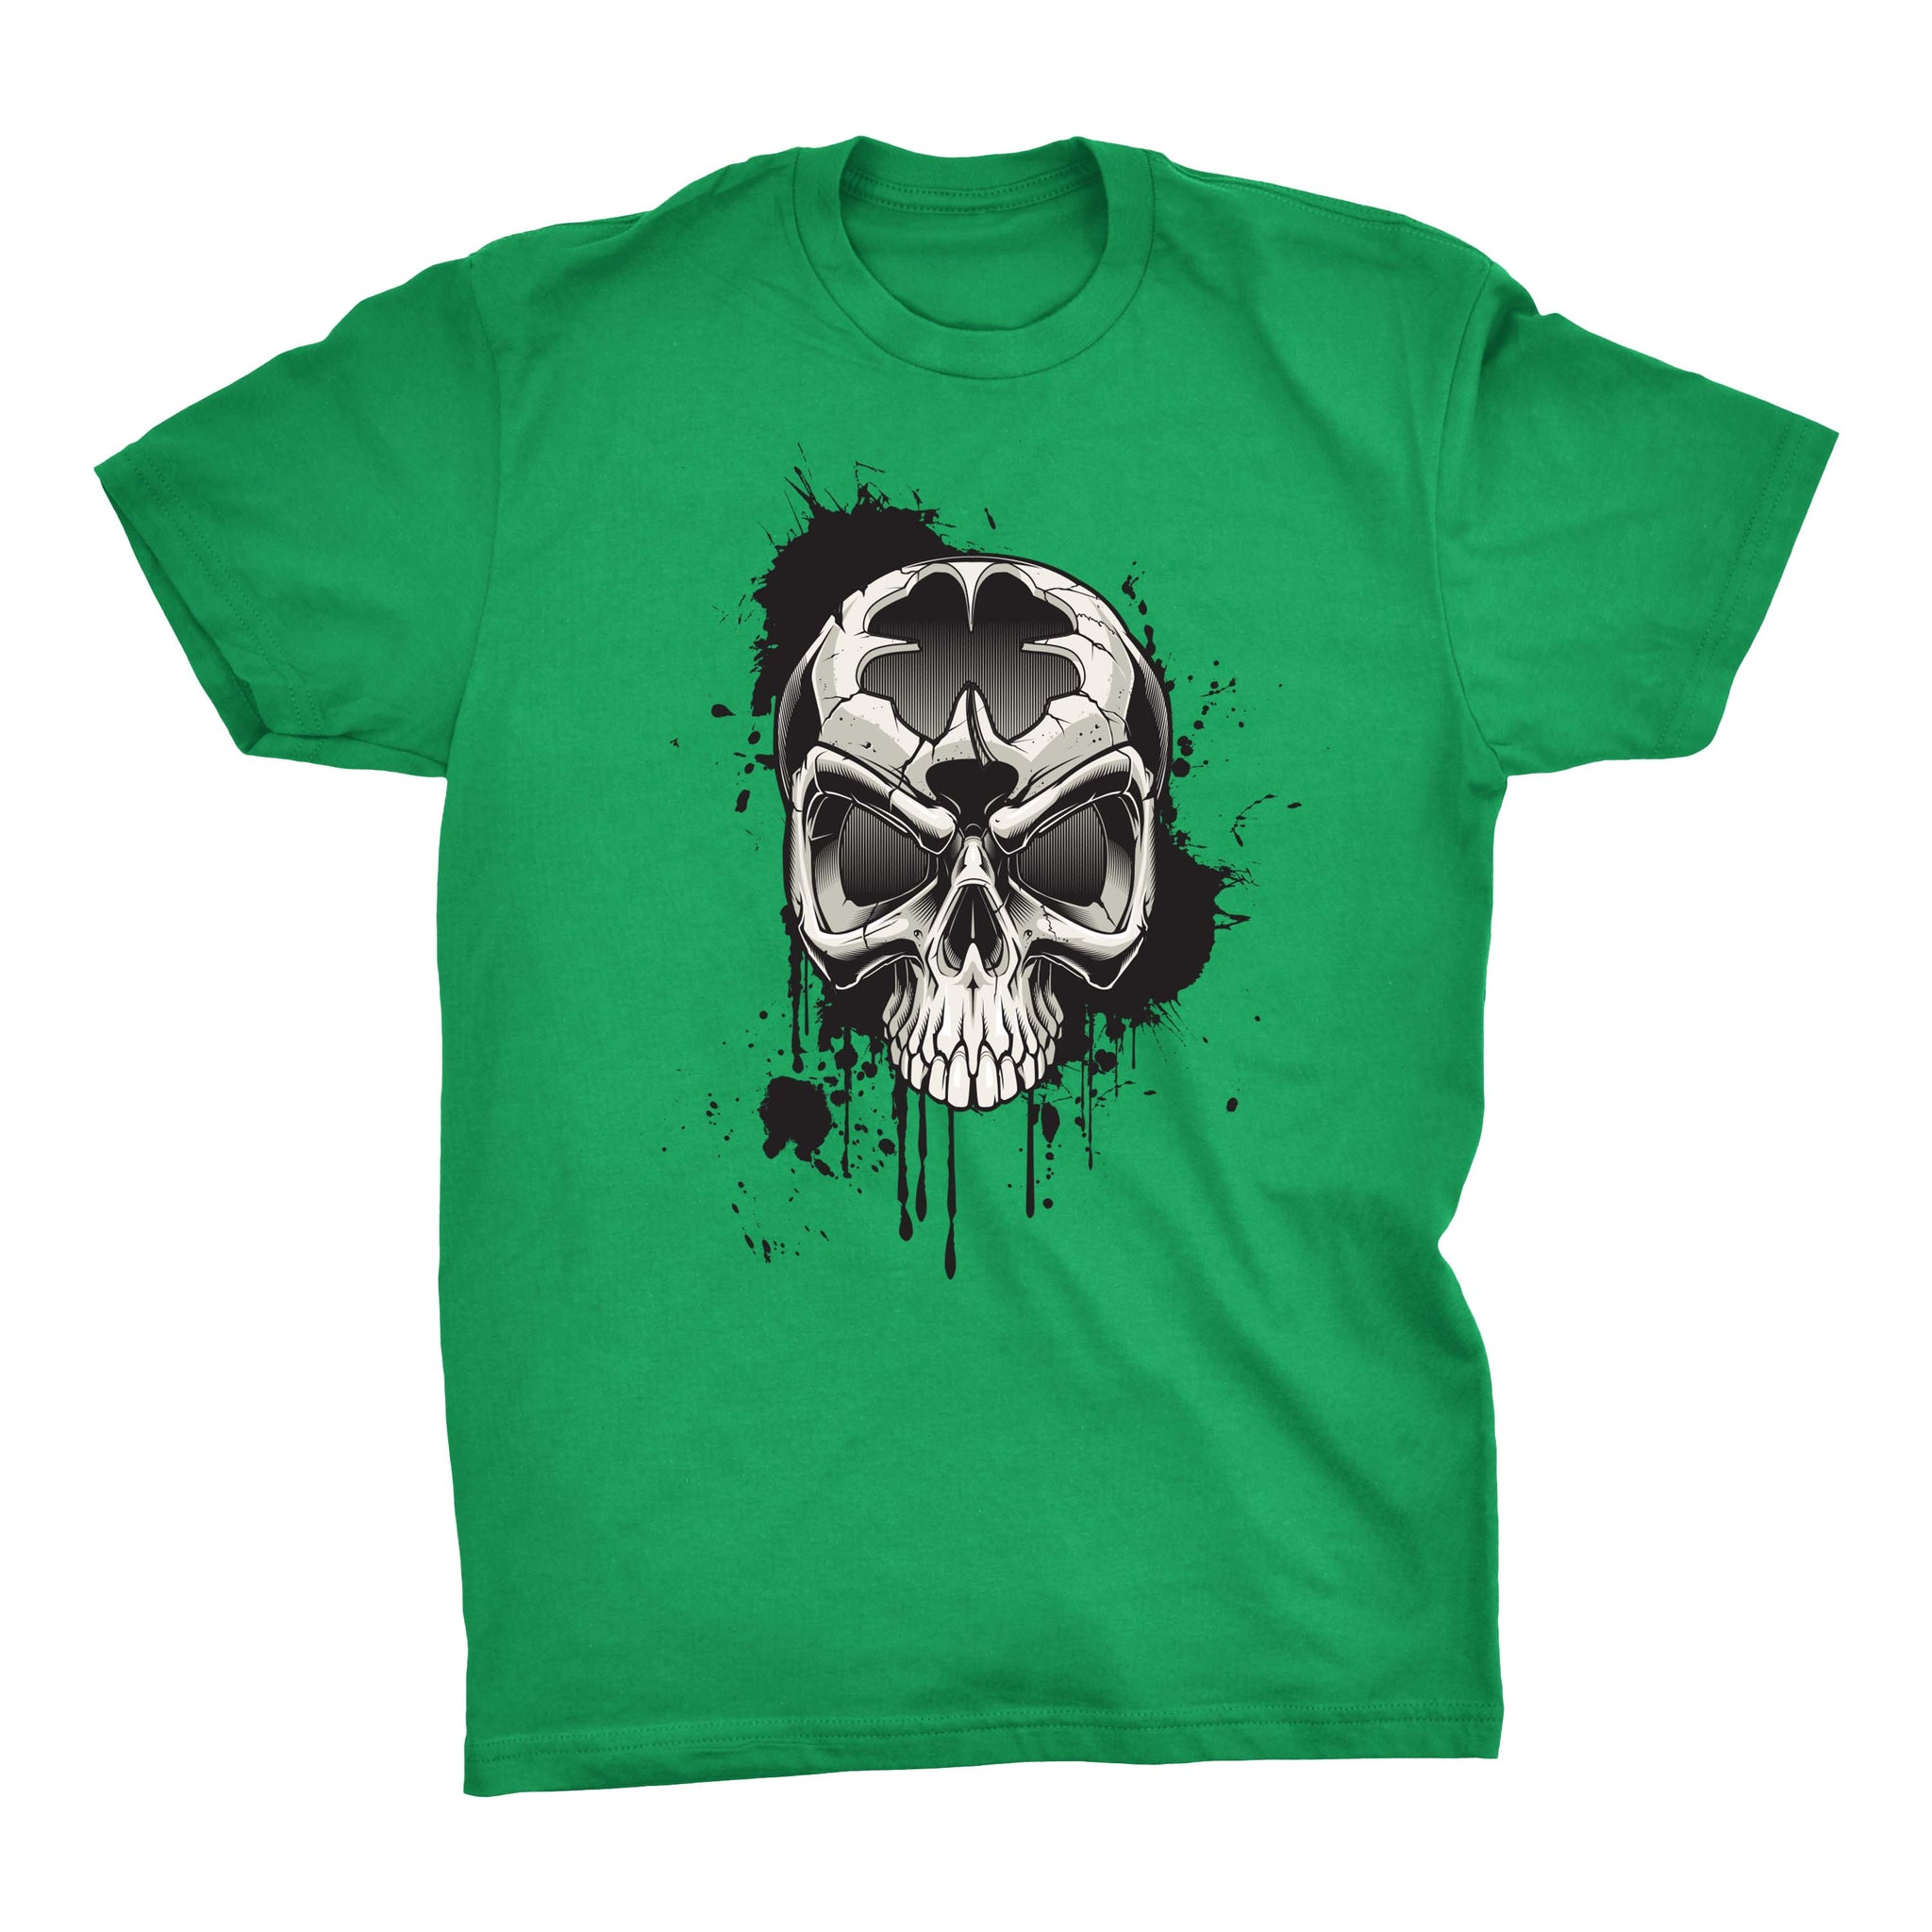 Make Your Own Luck - Kelly Green - T-Shirts - Pipe Hitters Union